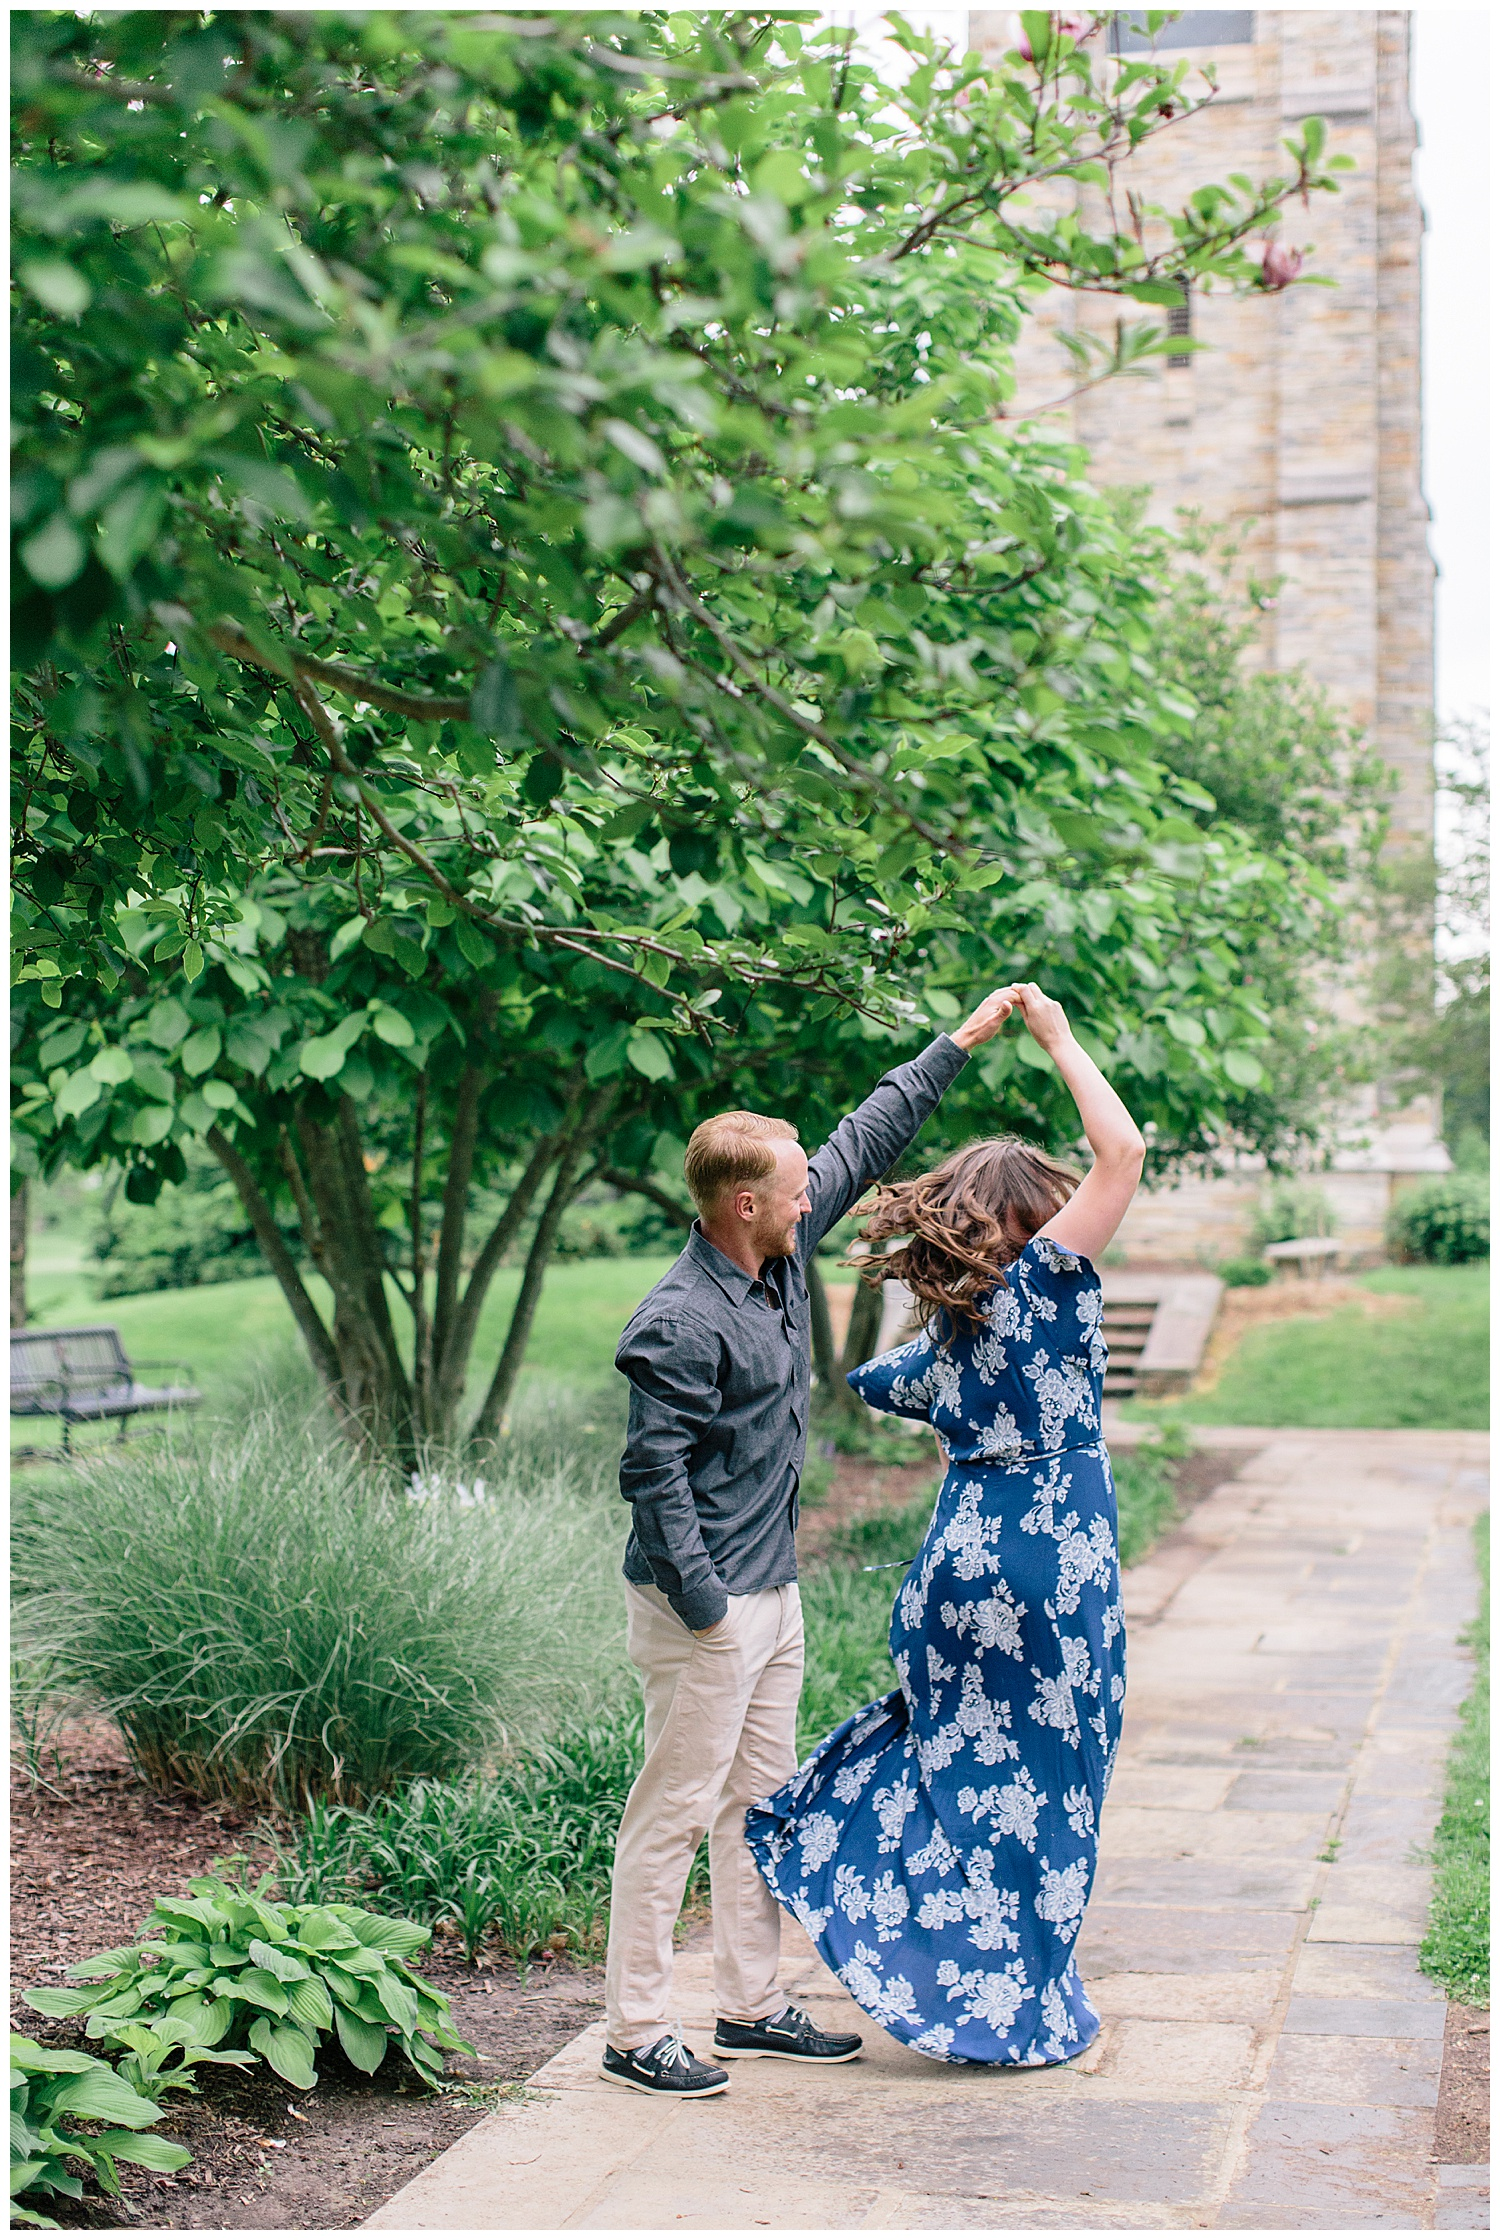 emily-belson-photography-frederick-md-engagement-15.jpg